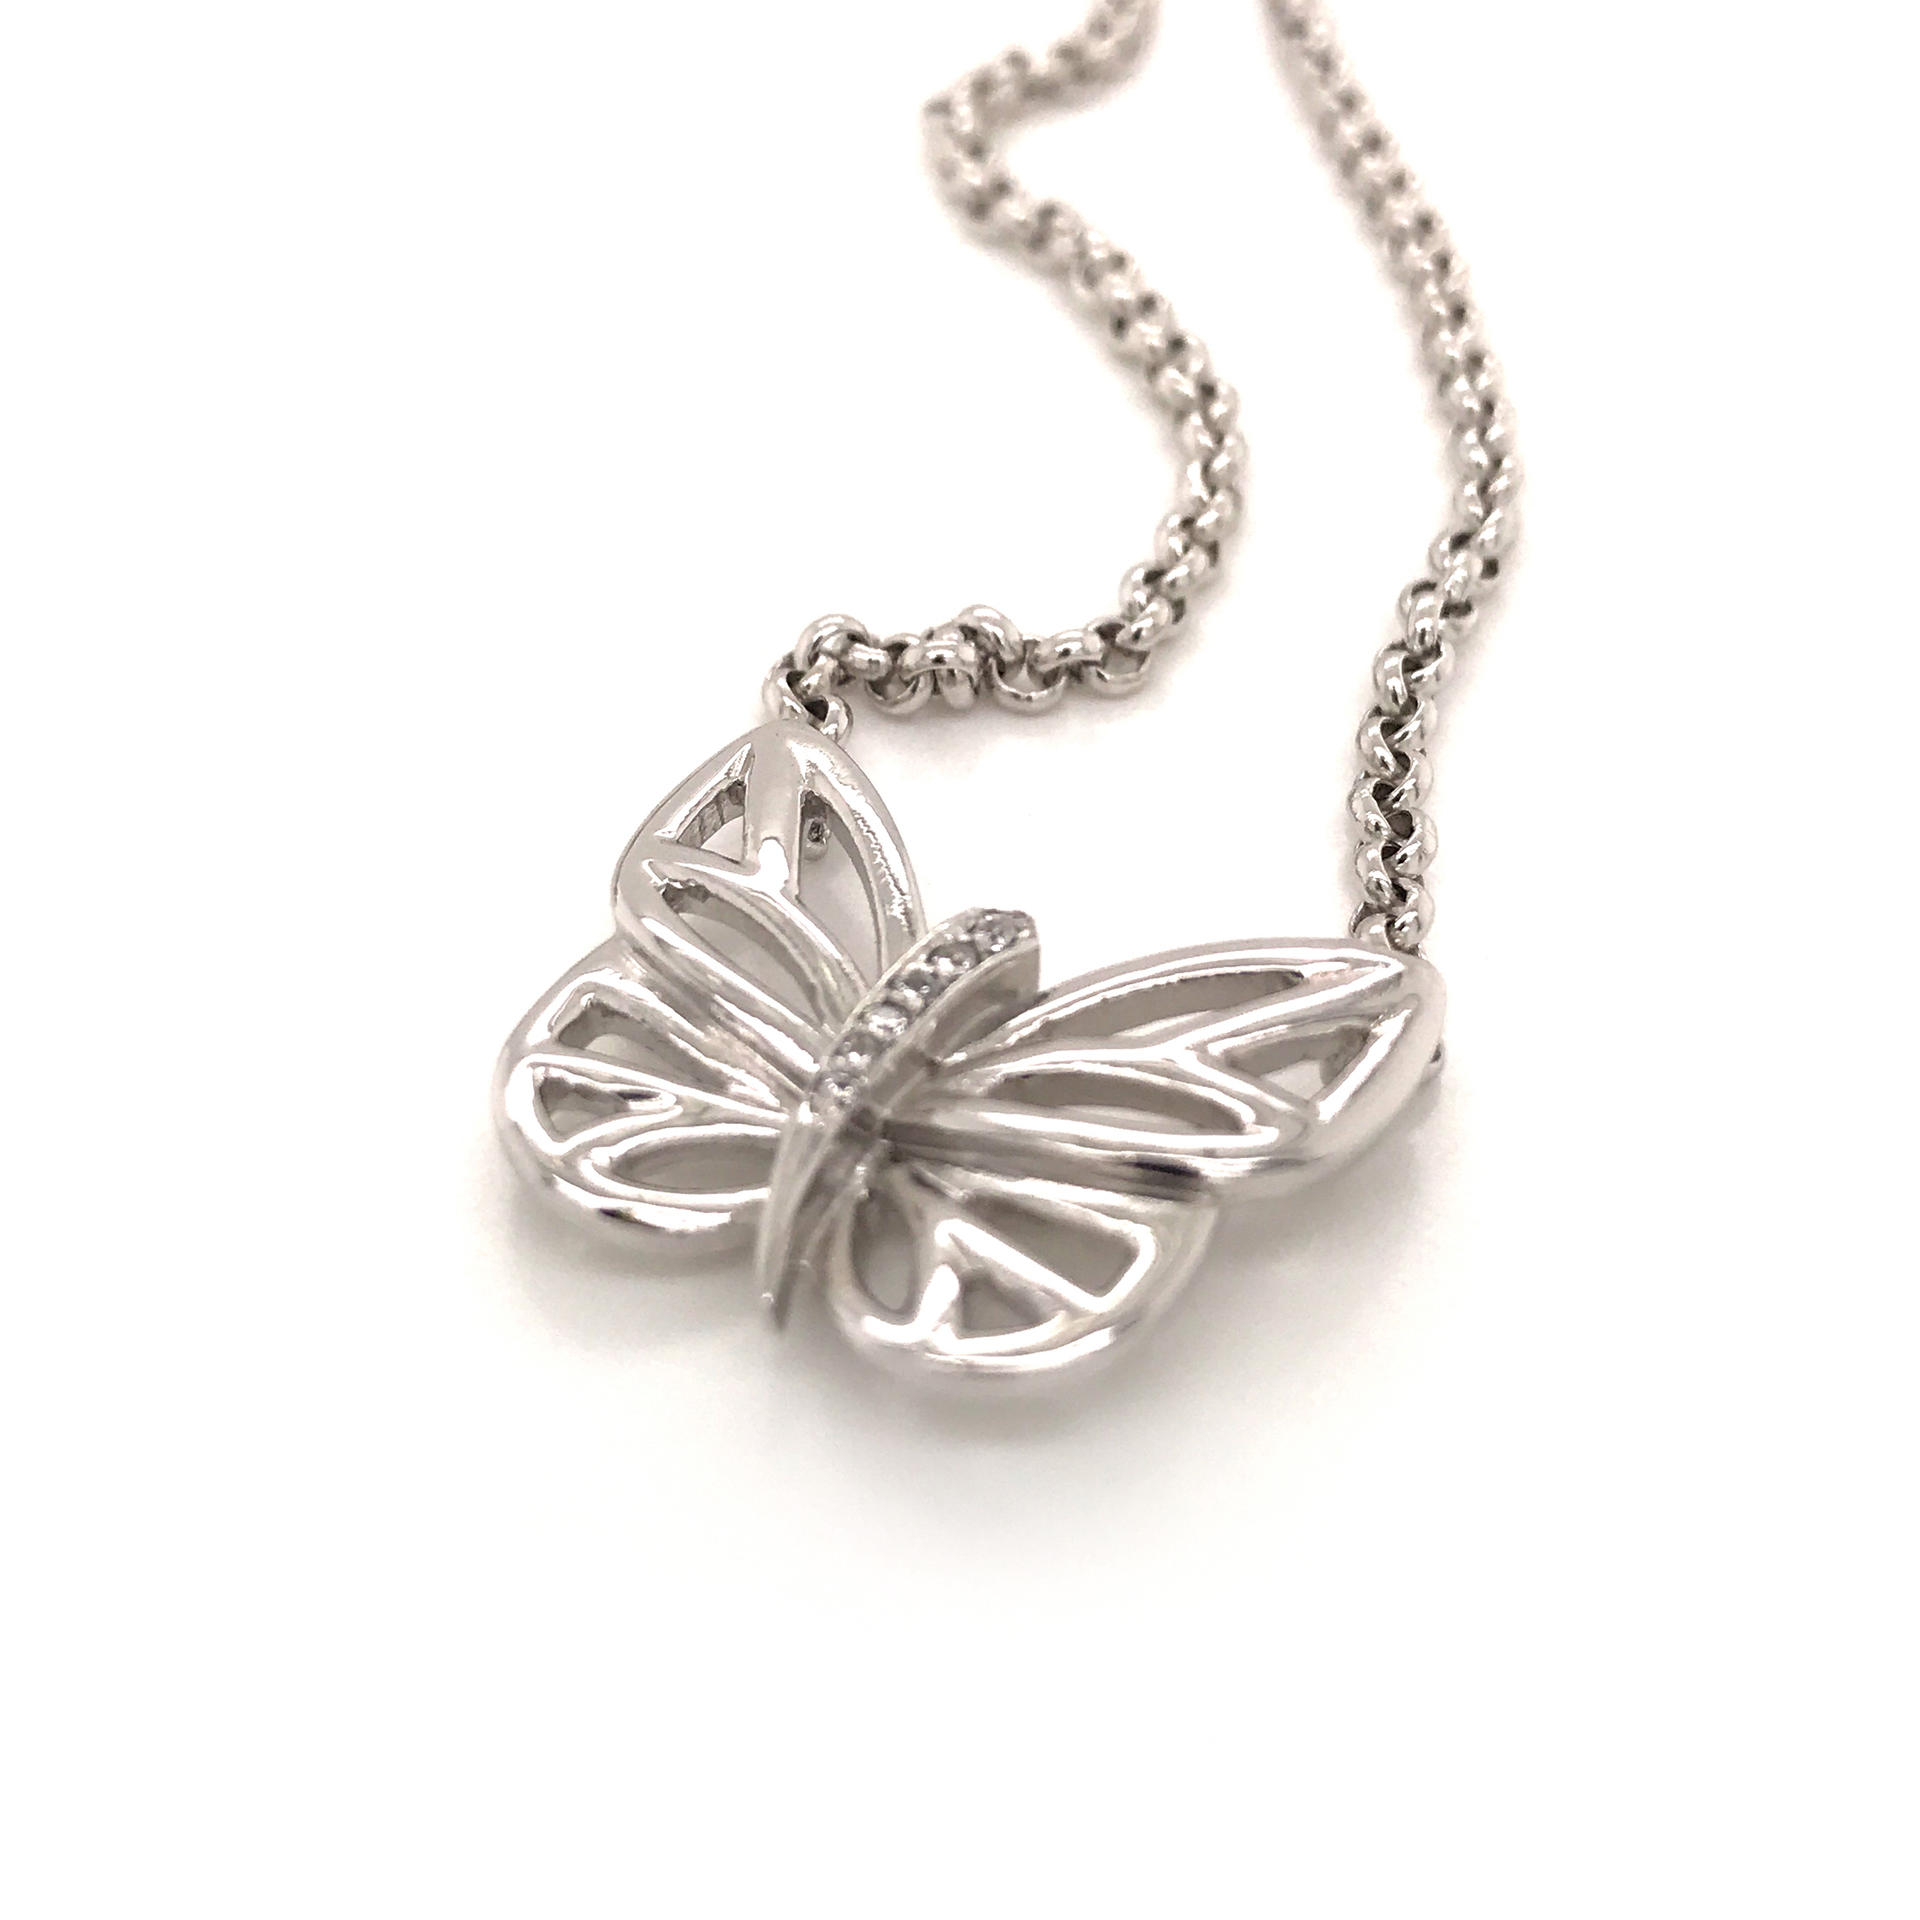 Hollow Design Zircon Butterfly Shaped Necklace, Simple 925 Silver Butterfly Chains Necklace